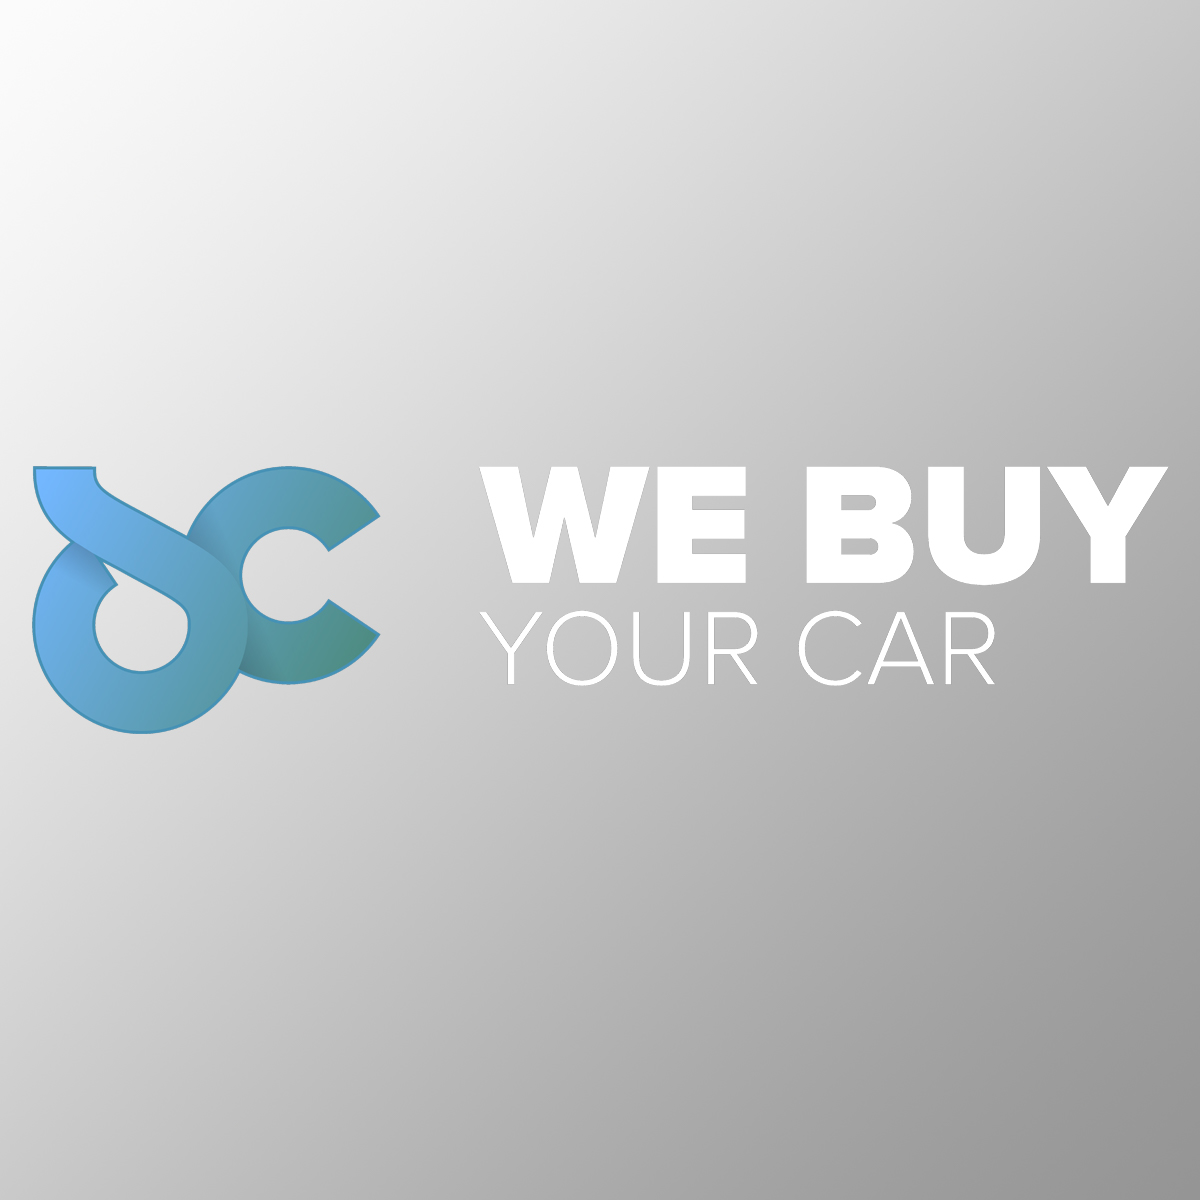 Manual Vehicle Valuation Request